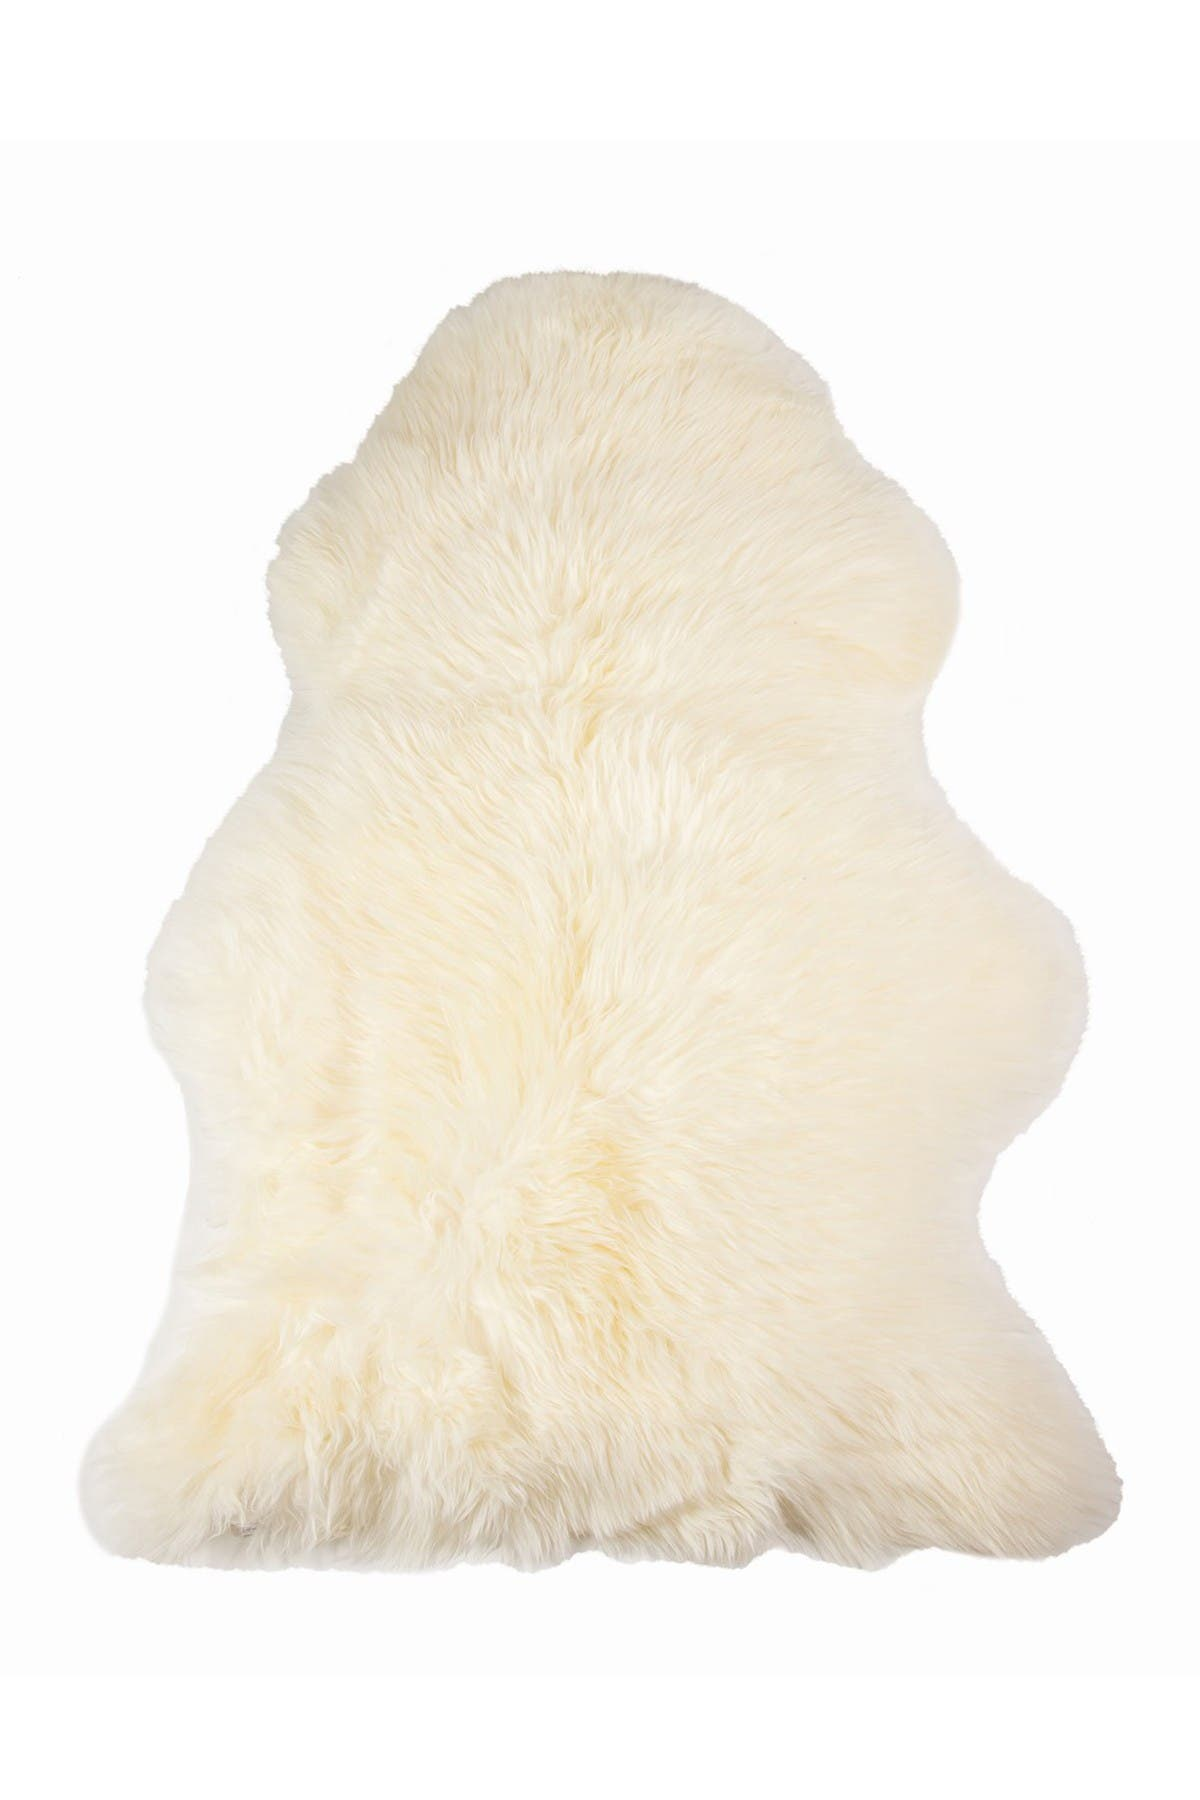 "Image of Natural Milan Genuine Sheepskin Shearling Throw 24"" x 36"" - Ivory"